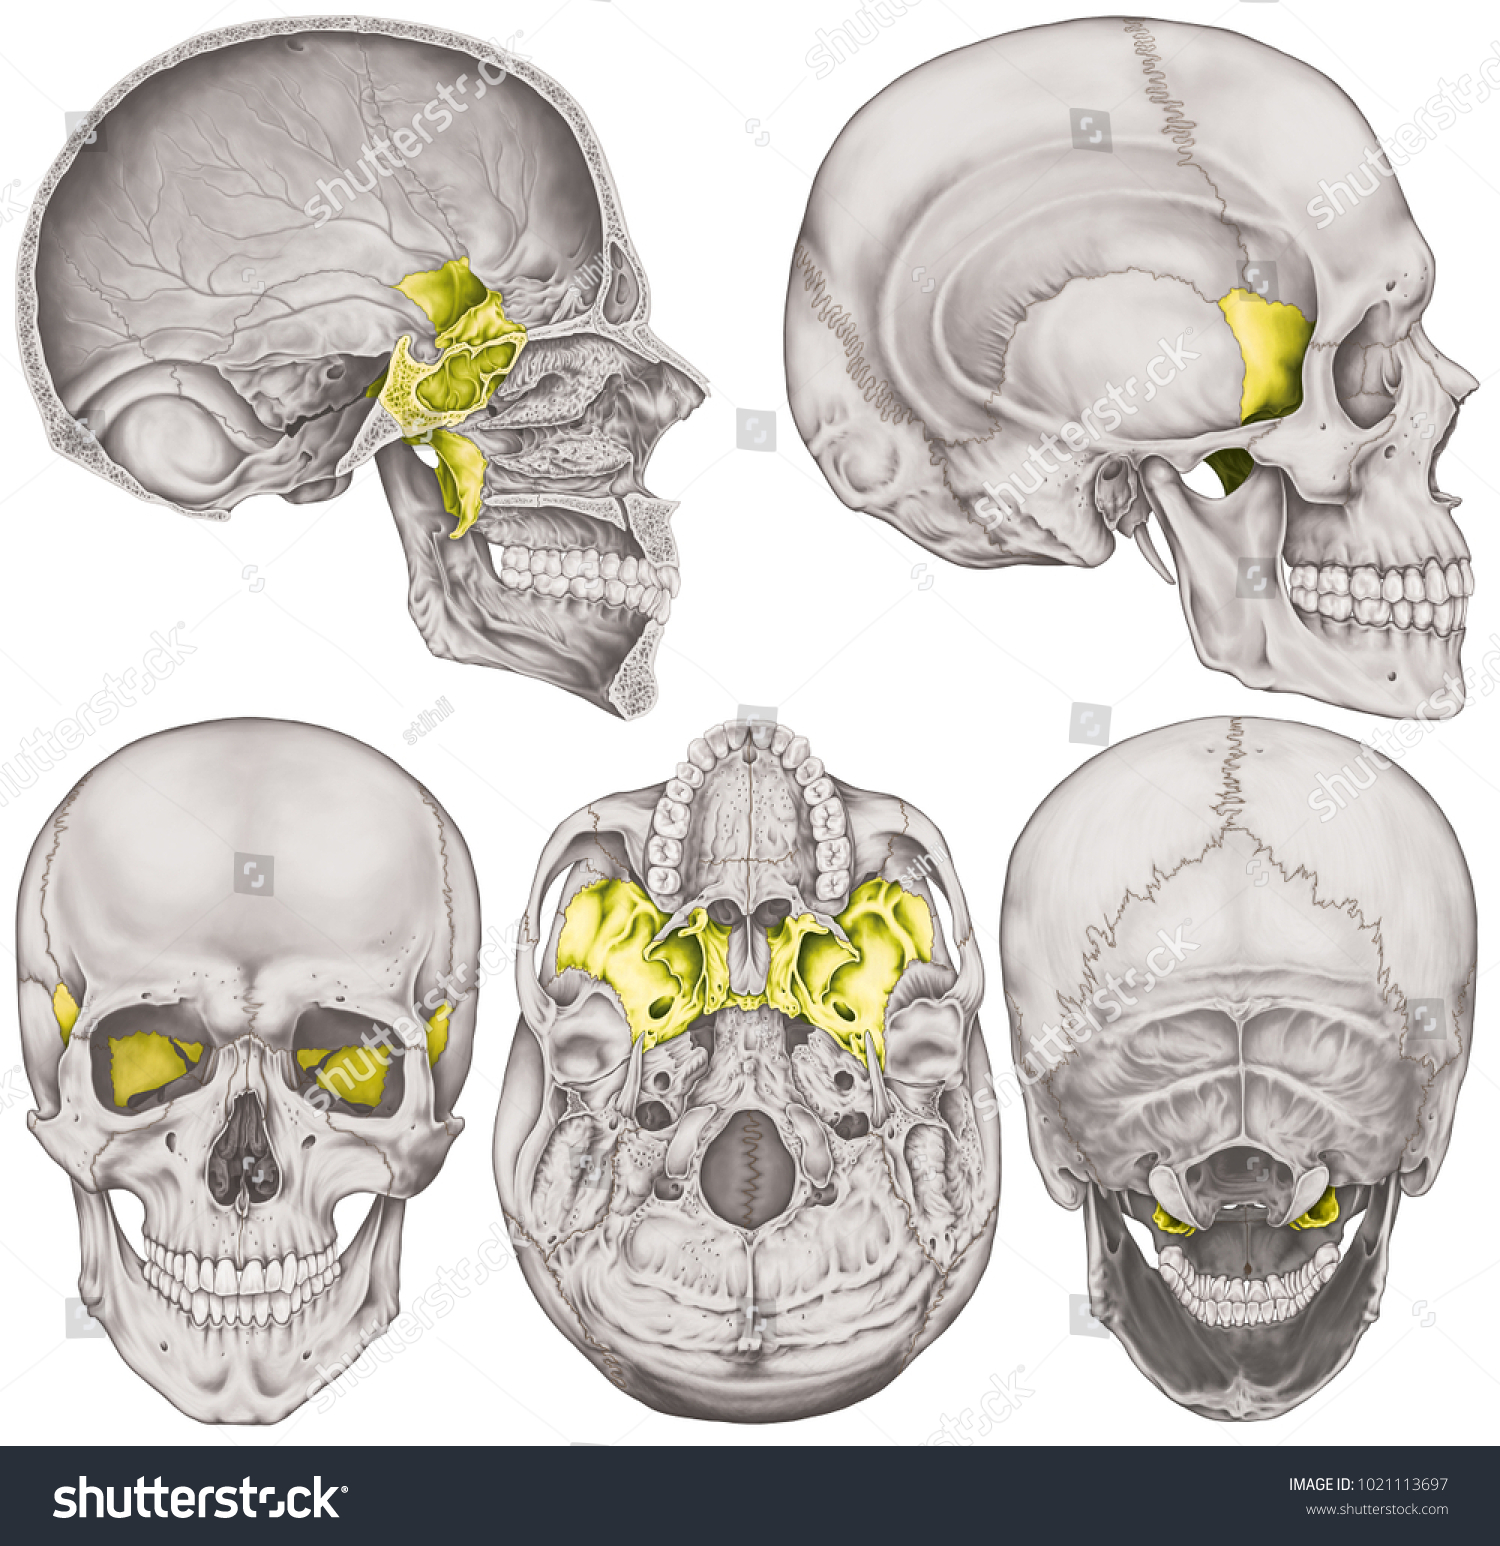 Sphenoid Bone Cranium Bones Head Skull Stock Illustration 1021113697 ...